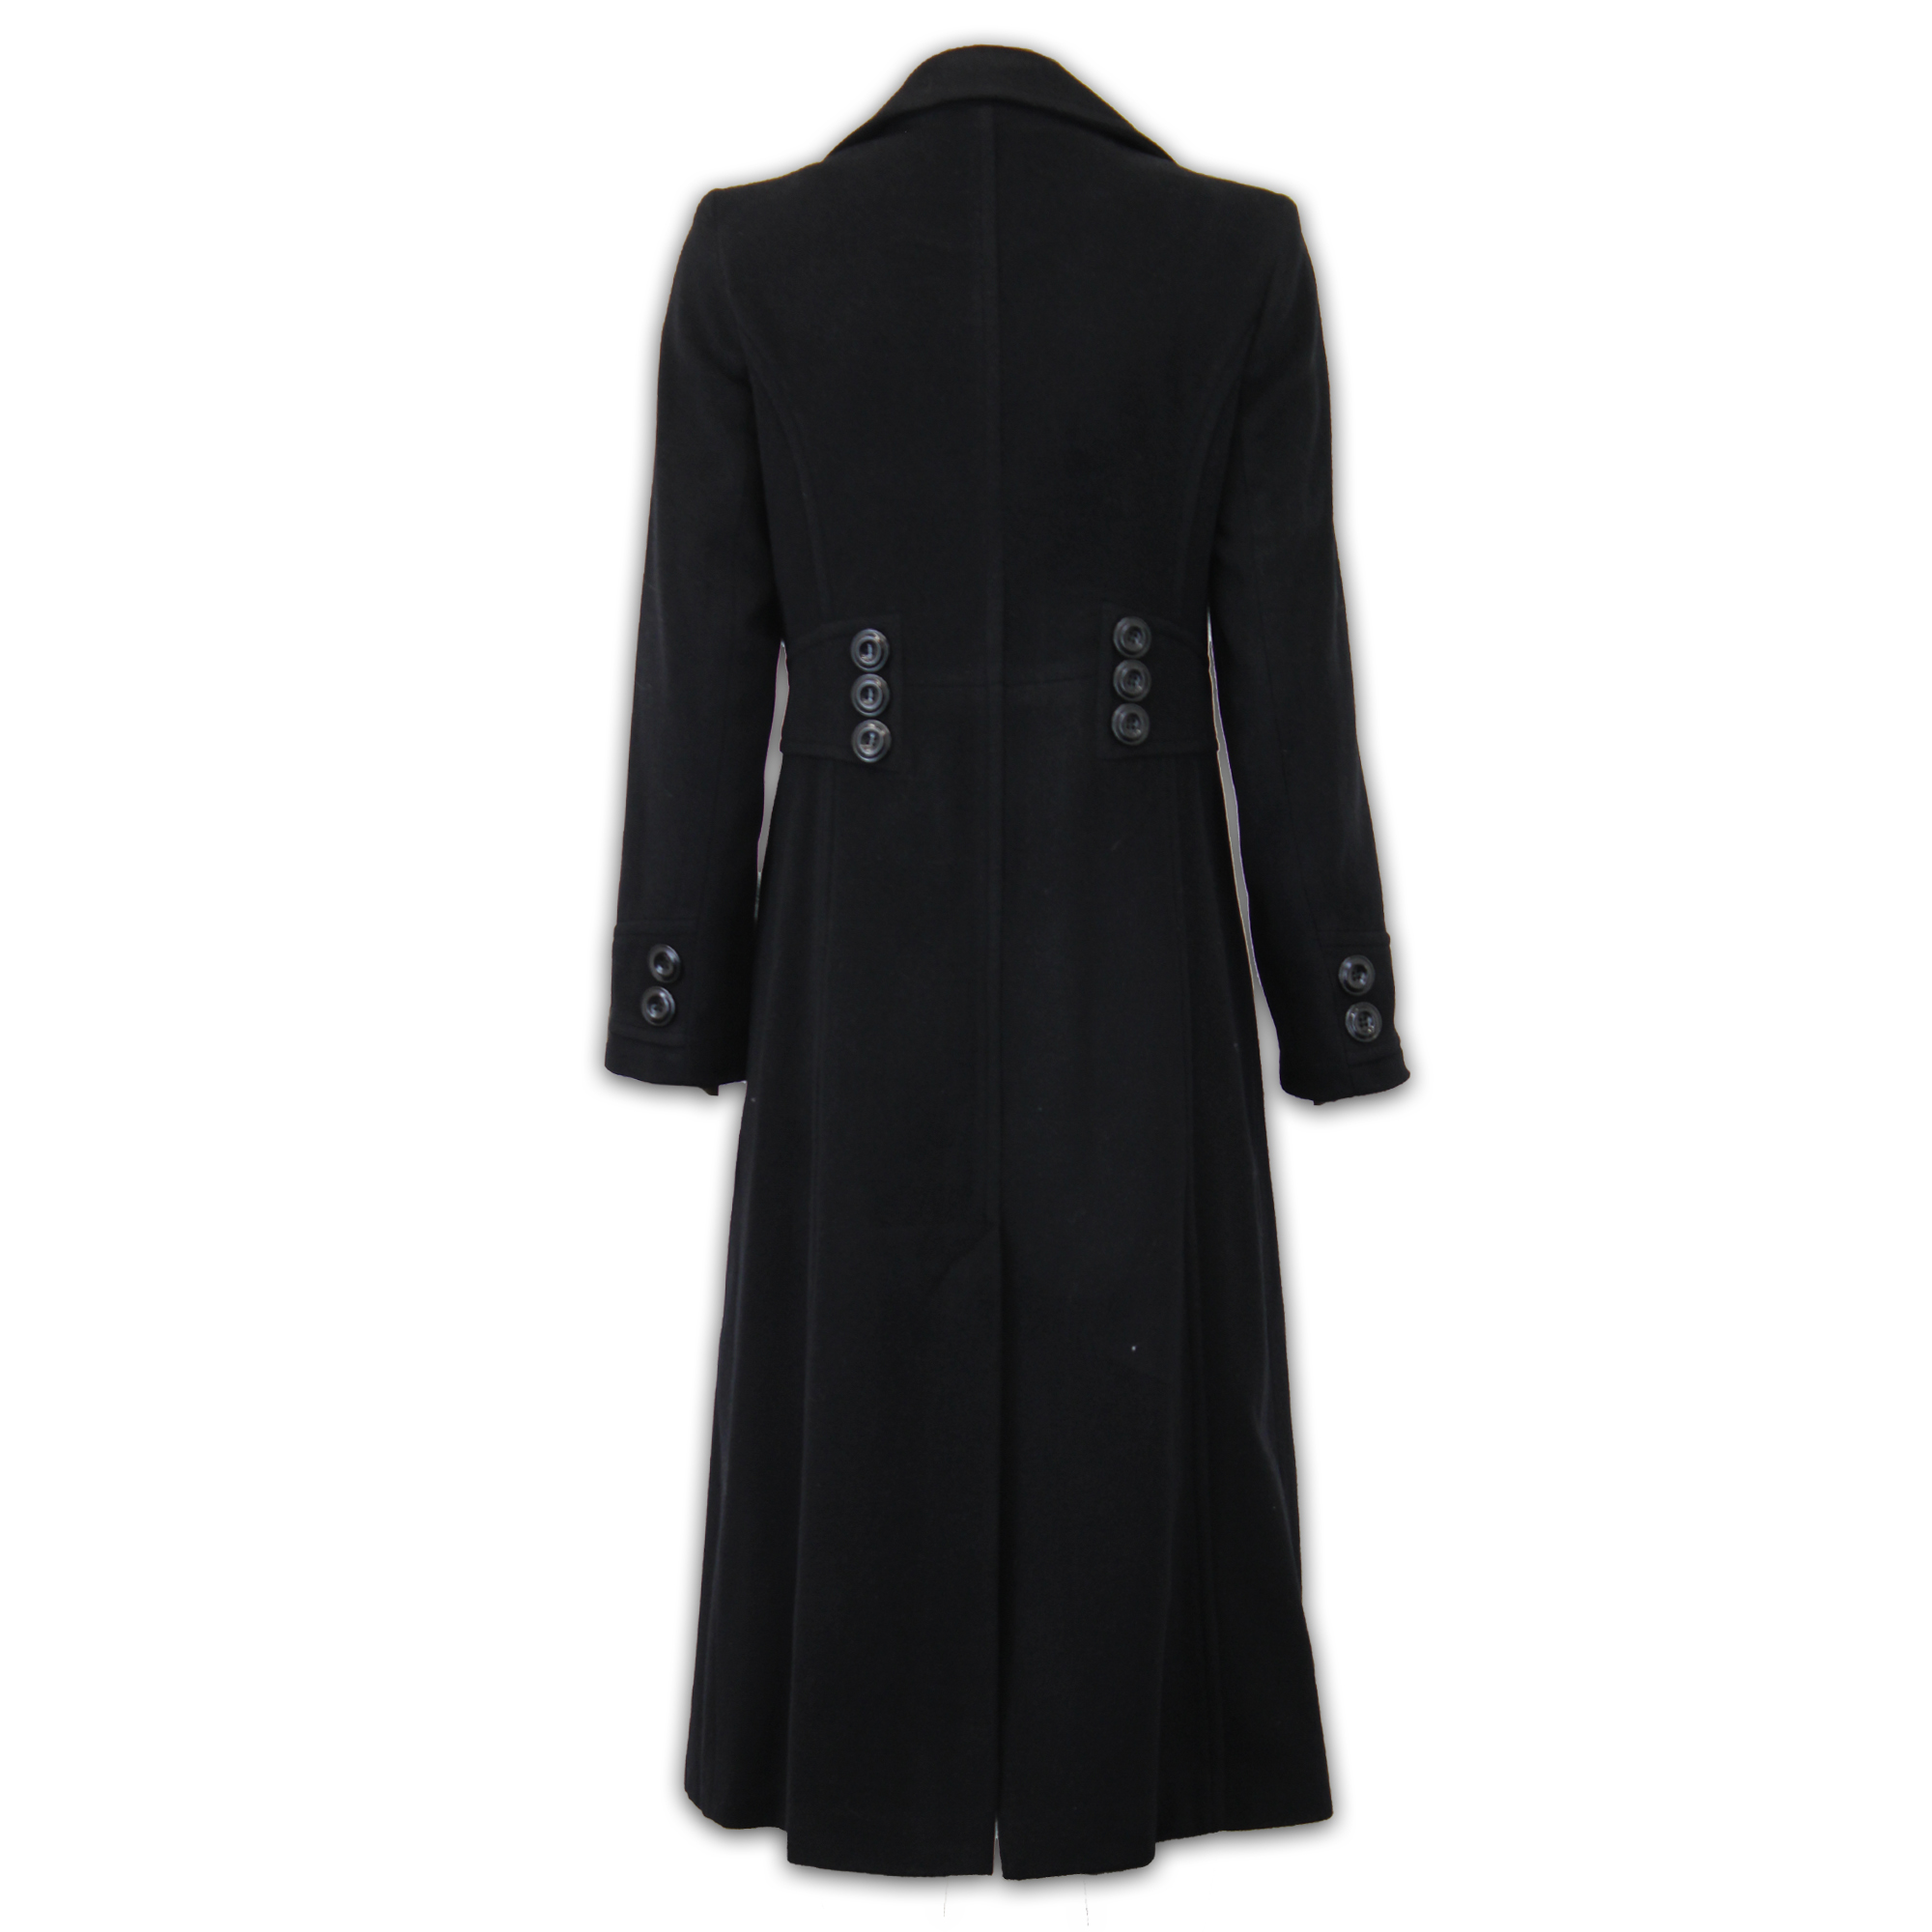 Shop Winter Women's Coats & Jackets at Boden USA | Boden Day Returns Guarantee· Free Delivery over 49$· 20% Off Dresses,+ followers on Twitter.